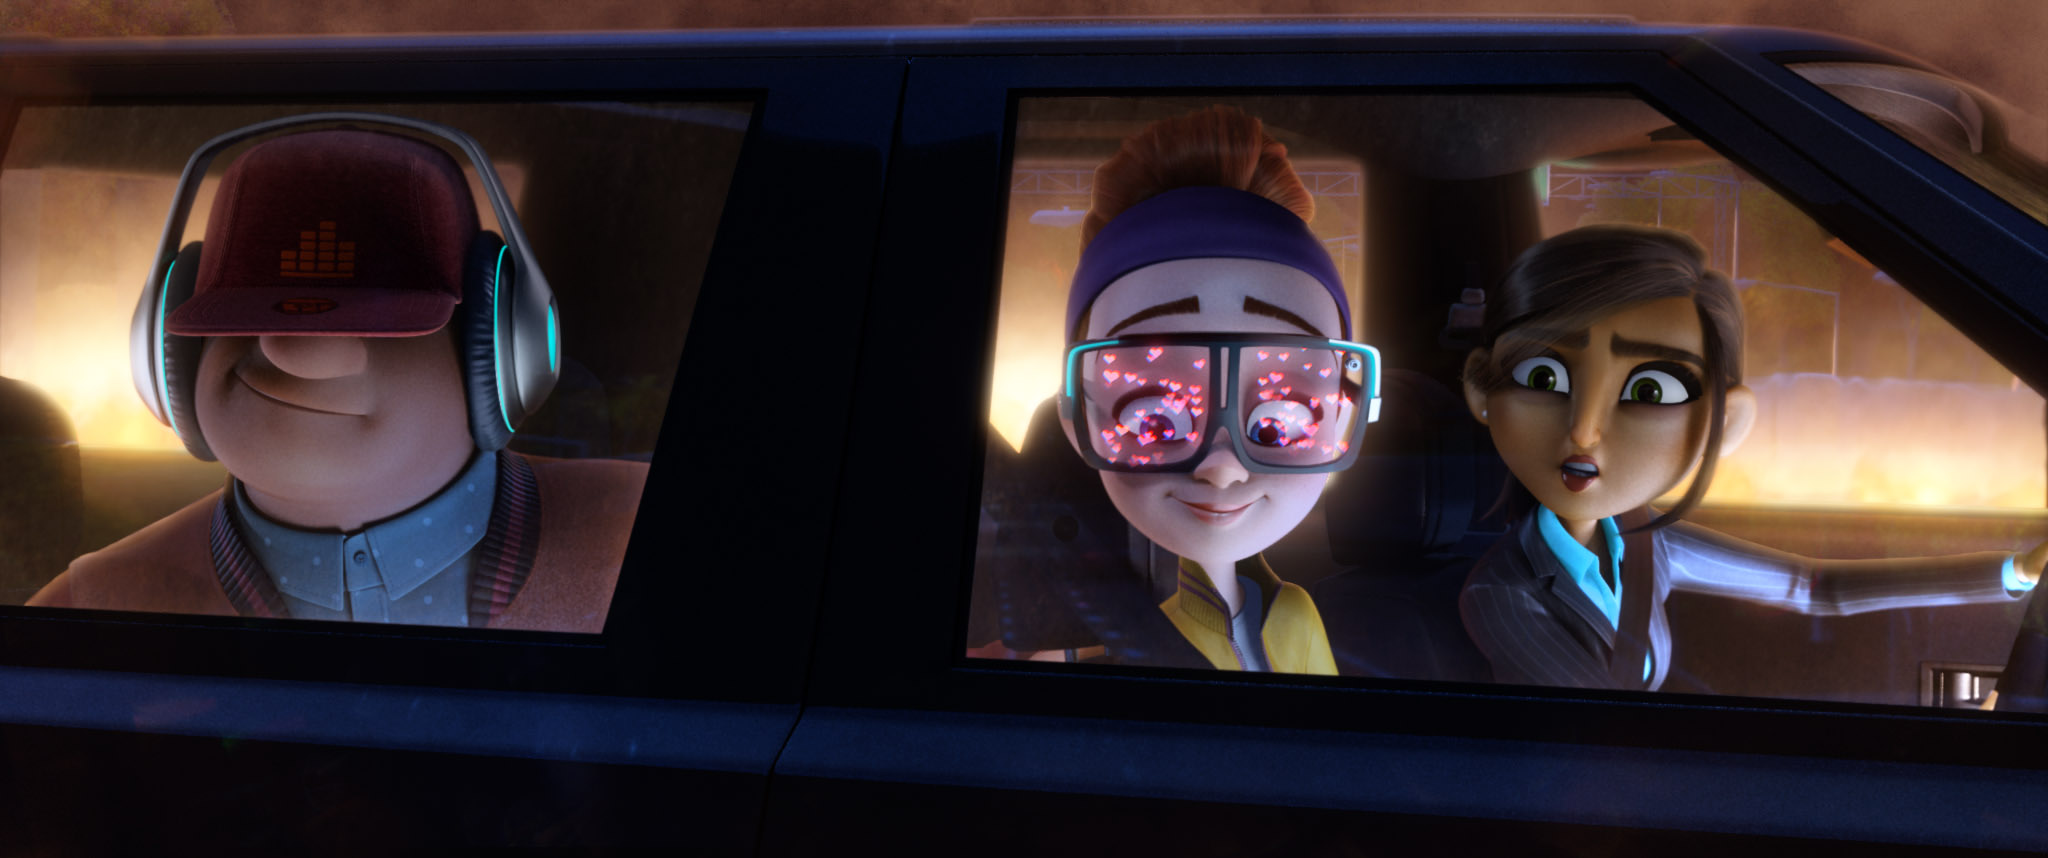 Spies In Disguise still 2.jpg